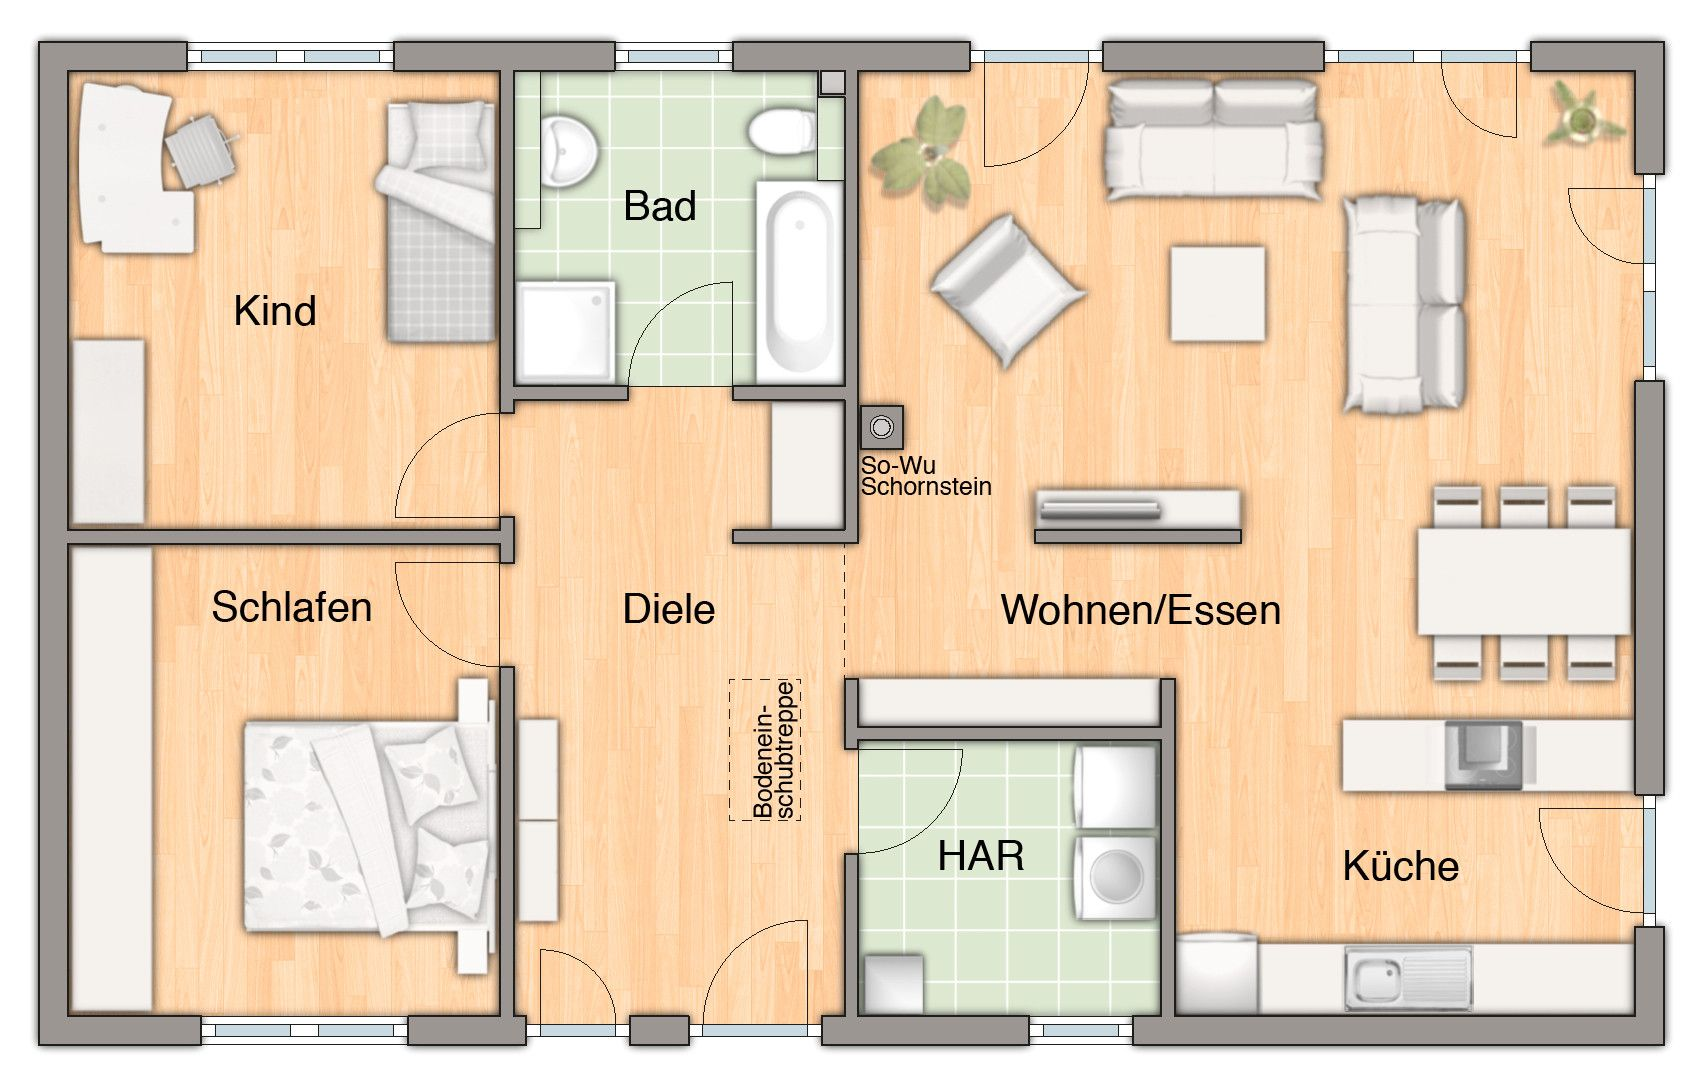 grundriss haus modern 4 zimmer in 2019 house rooms floor layout house plans